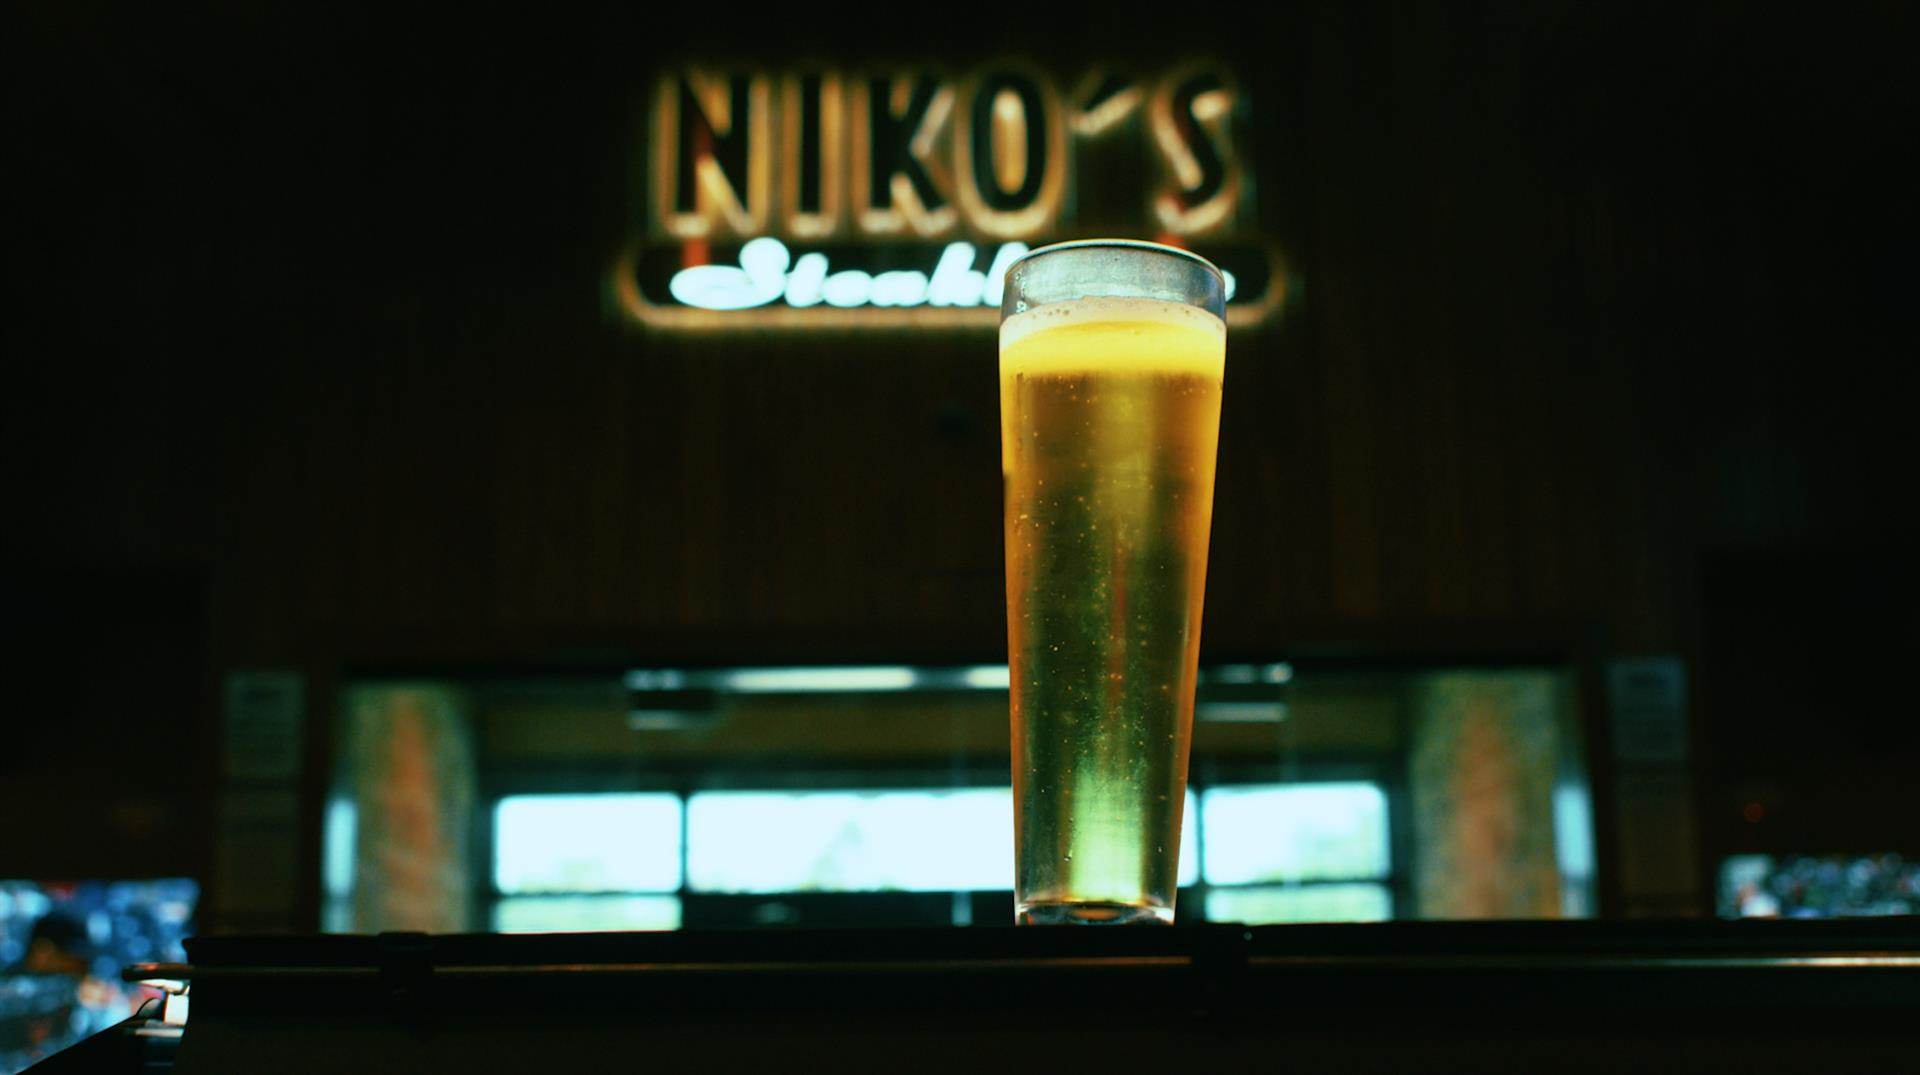 beer glass in front of a blurred, restaurant sign